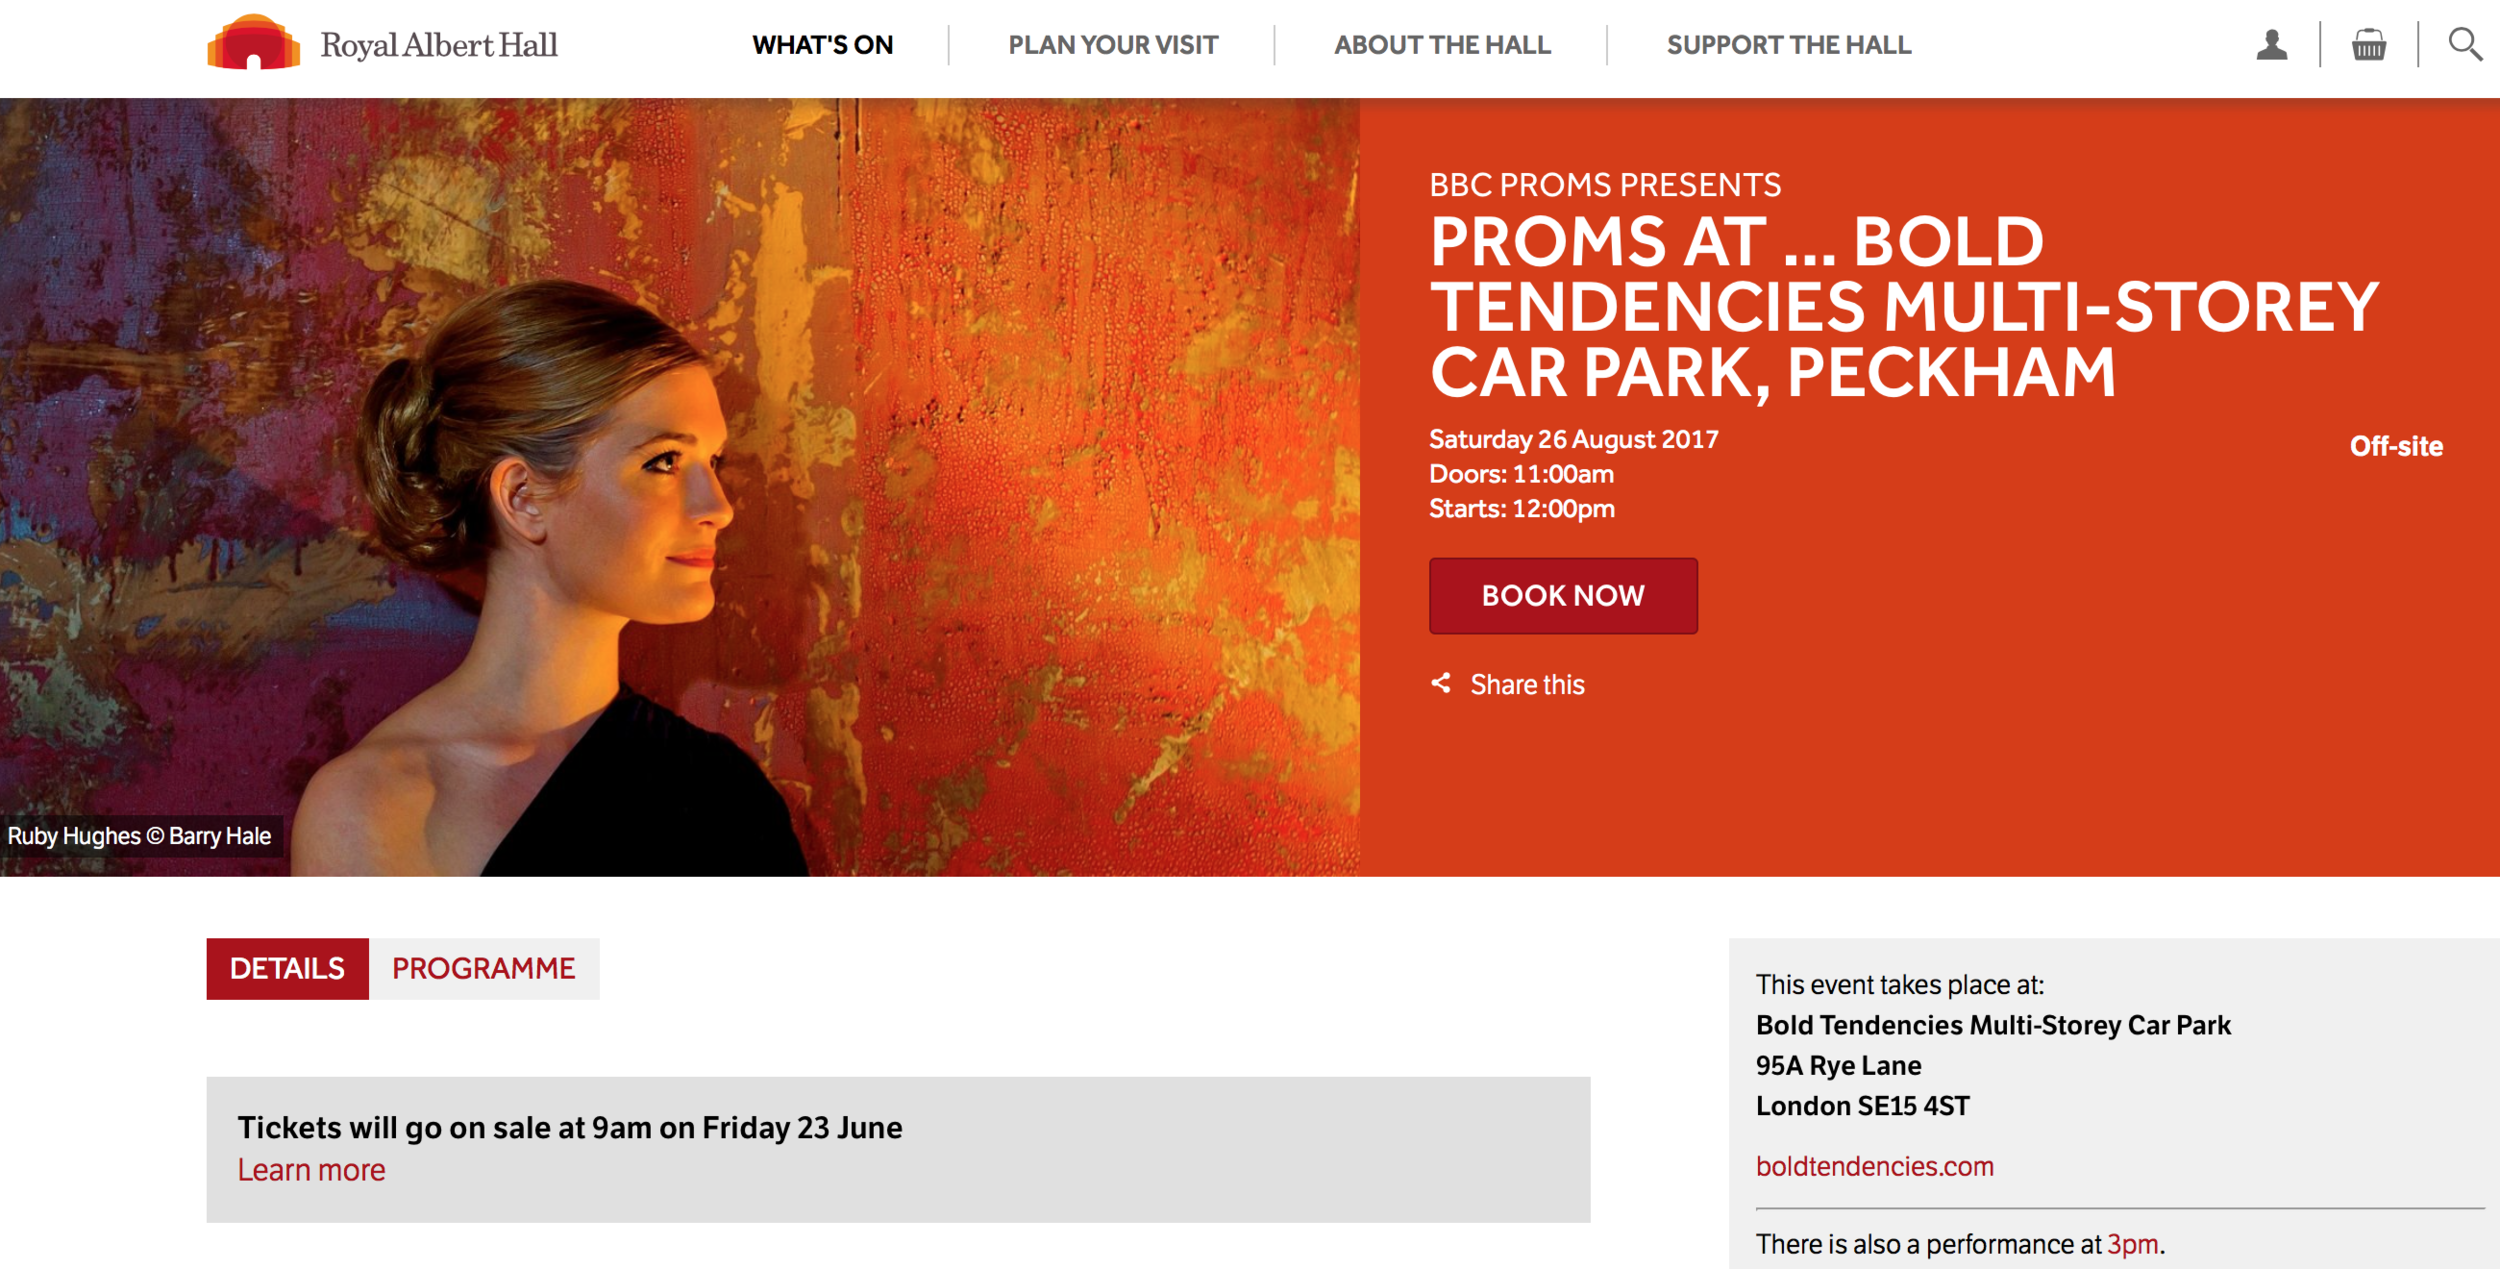 http://www.royalalberthall.com/tickets/proms/proms-2017/proms-at-bold-tendencies-multi-storey-car-park-peckham/